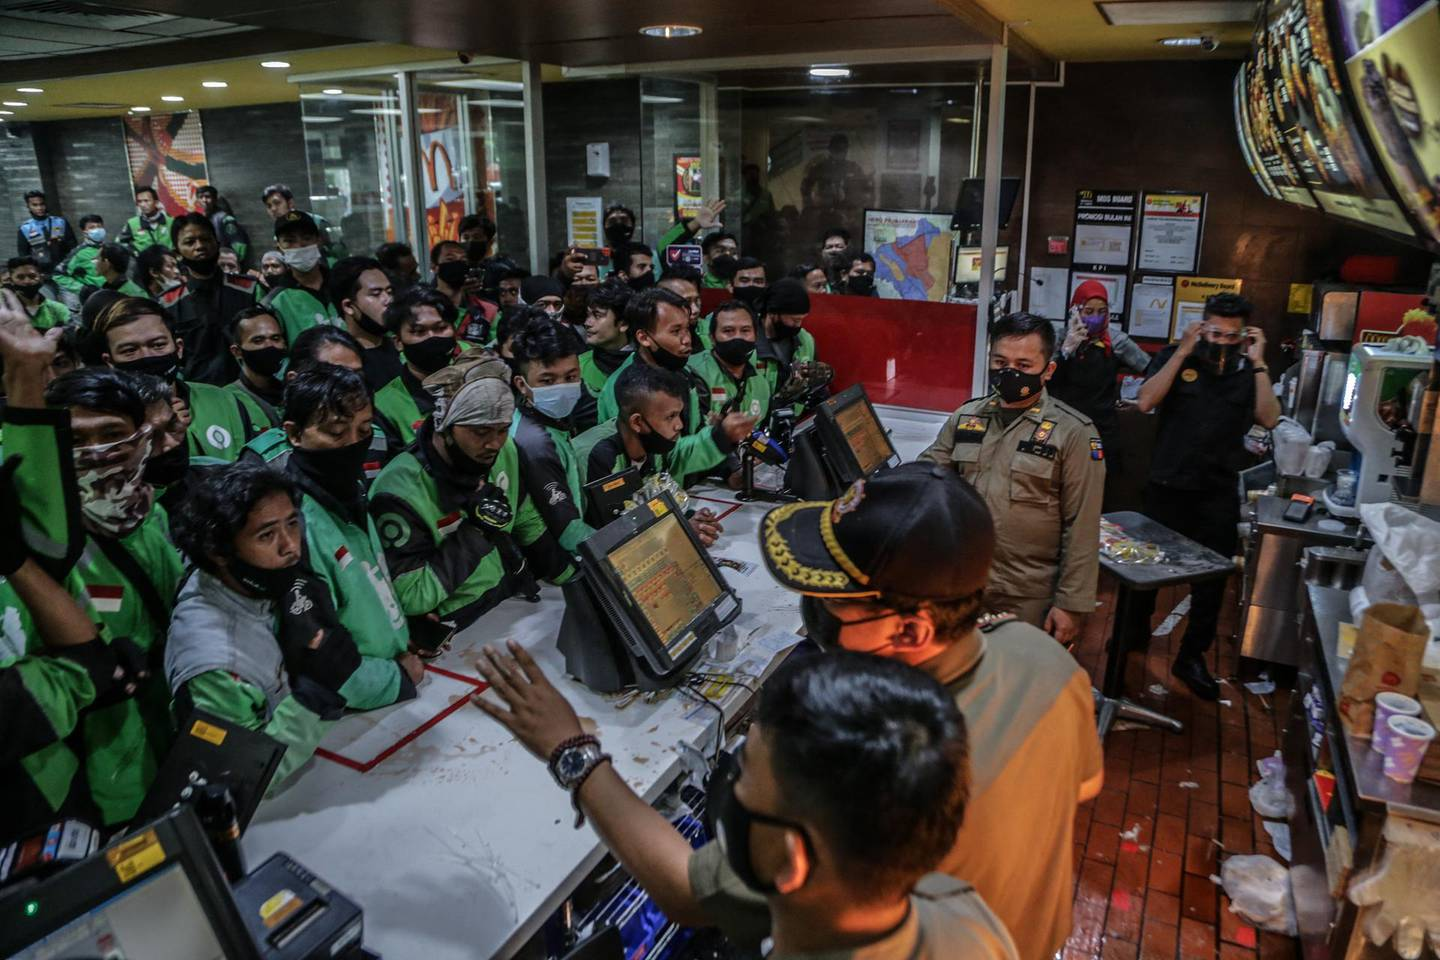 Food delivery riders queue up at a McDonald's outlet in Bogor on June 9, 2021, to buy the new BTS-meal deal for hungry fans in the K-Pop mad country, causing more than a dozen McDonald's outlets to temporarily shuttered over virus fears. / AFP / ADITYA AJI